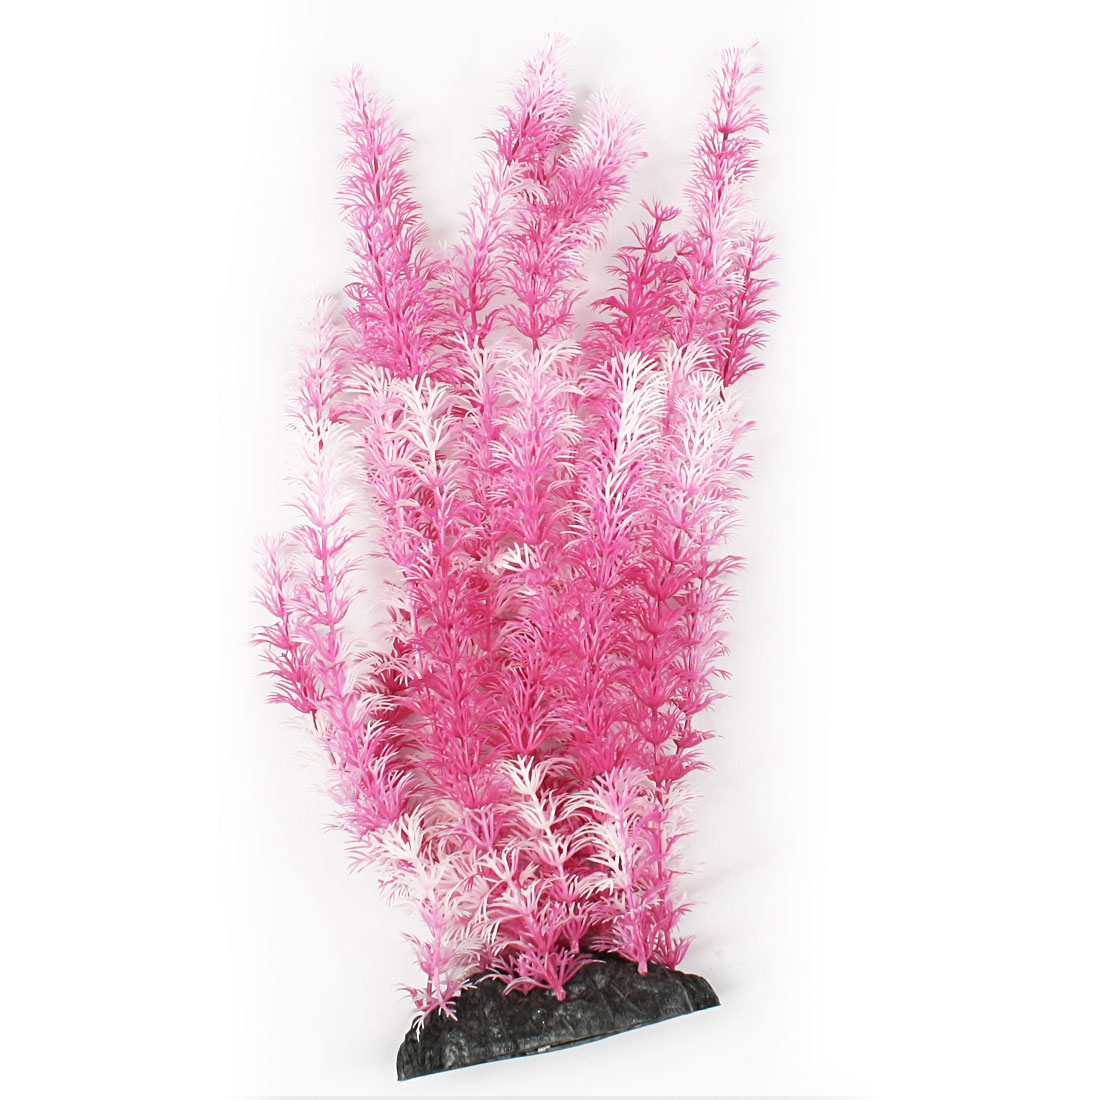 "16.9"" High Emulational Rosy Red White Grasses Plant for Fish Tank Ornament"